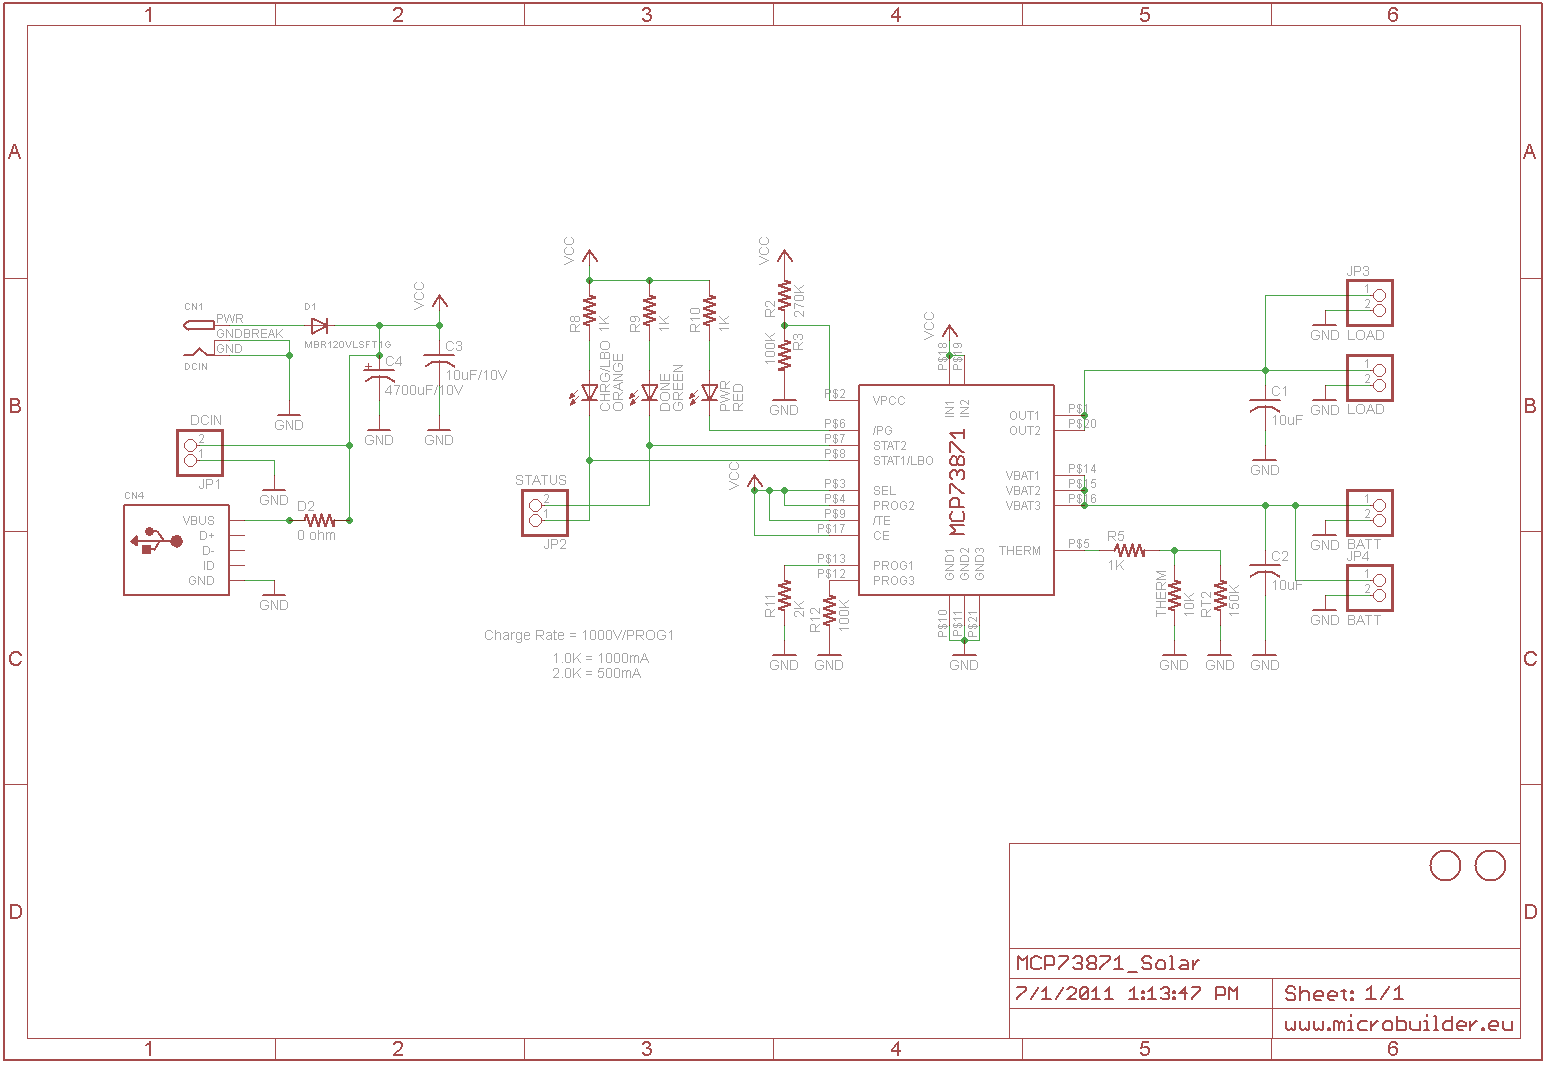 Adafruit Customer Service Forums View Topic Usb Dc Solar Circuit Diagram This Lithium Battery Charger Is Dedicated To The Schematic Here Get A 1a Charge Rate Change R11 From 2k 1k